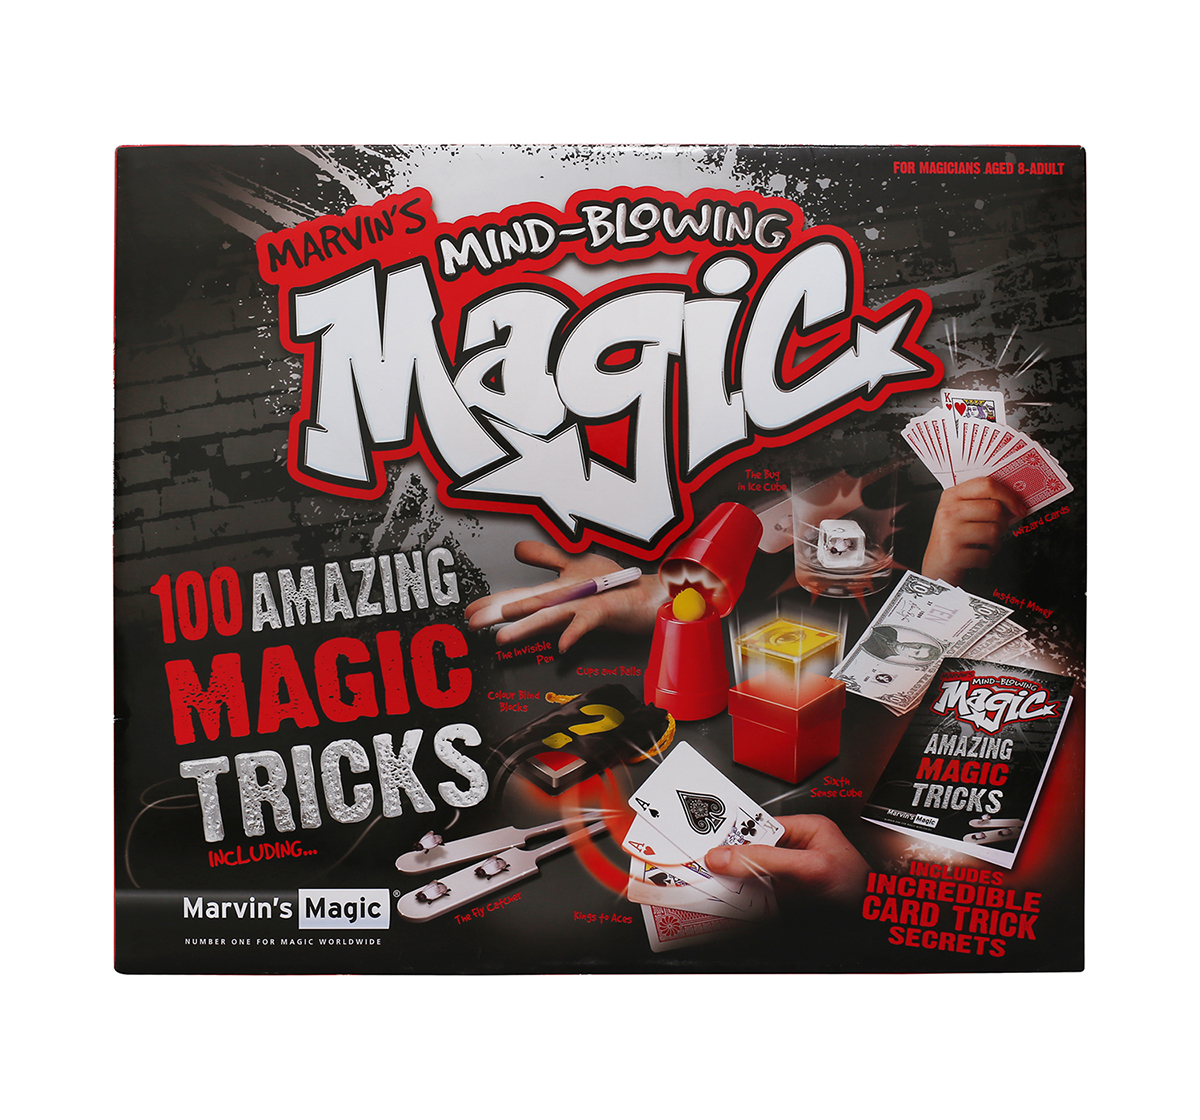 Marvin's Magic | Marvin'S Magic Mind Blowing Magic Tricks Impulse Toys for Kids age 8Y+